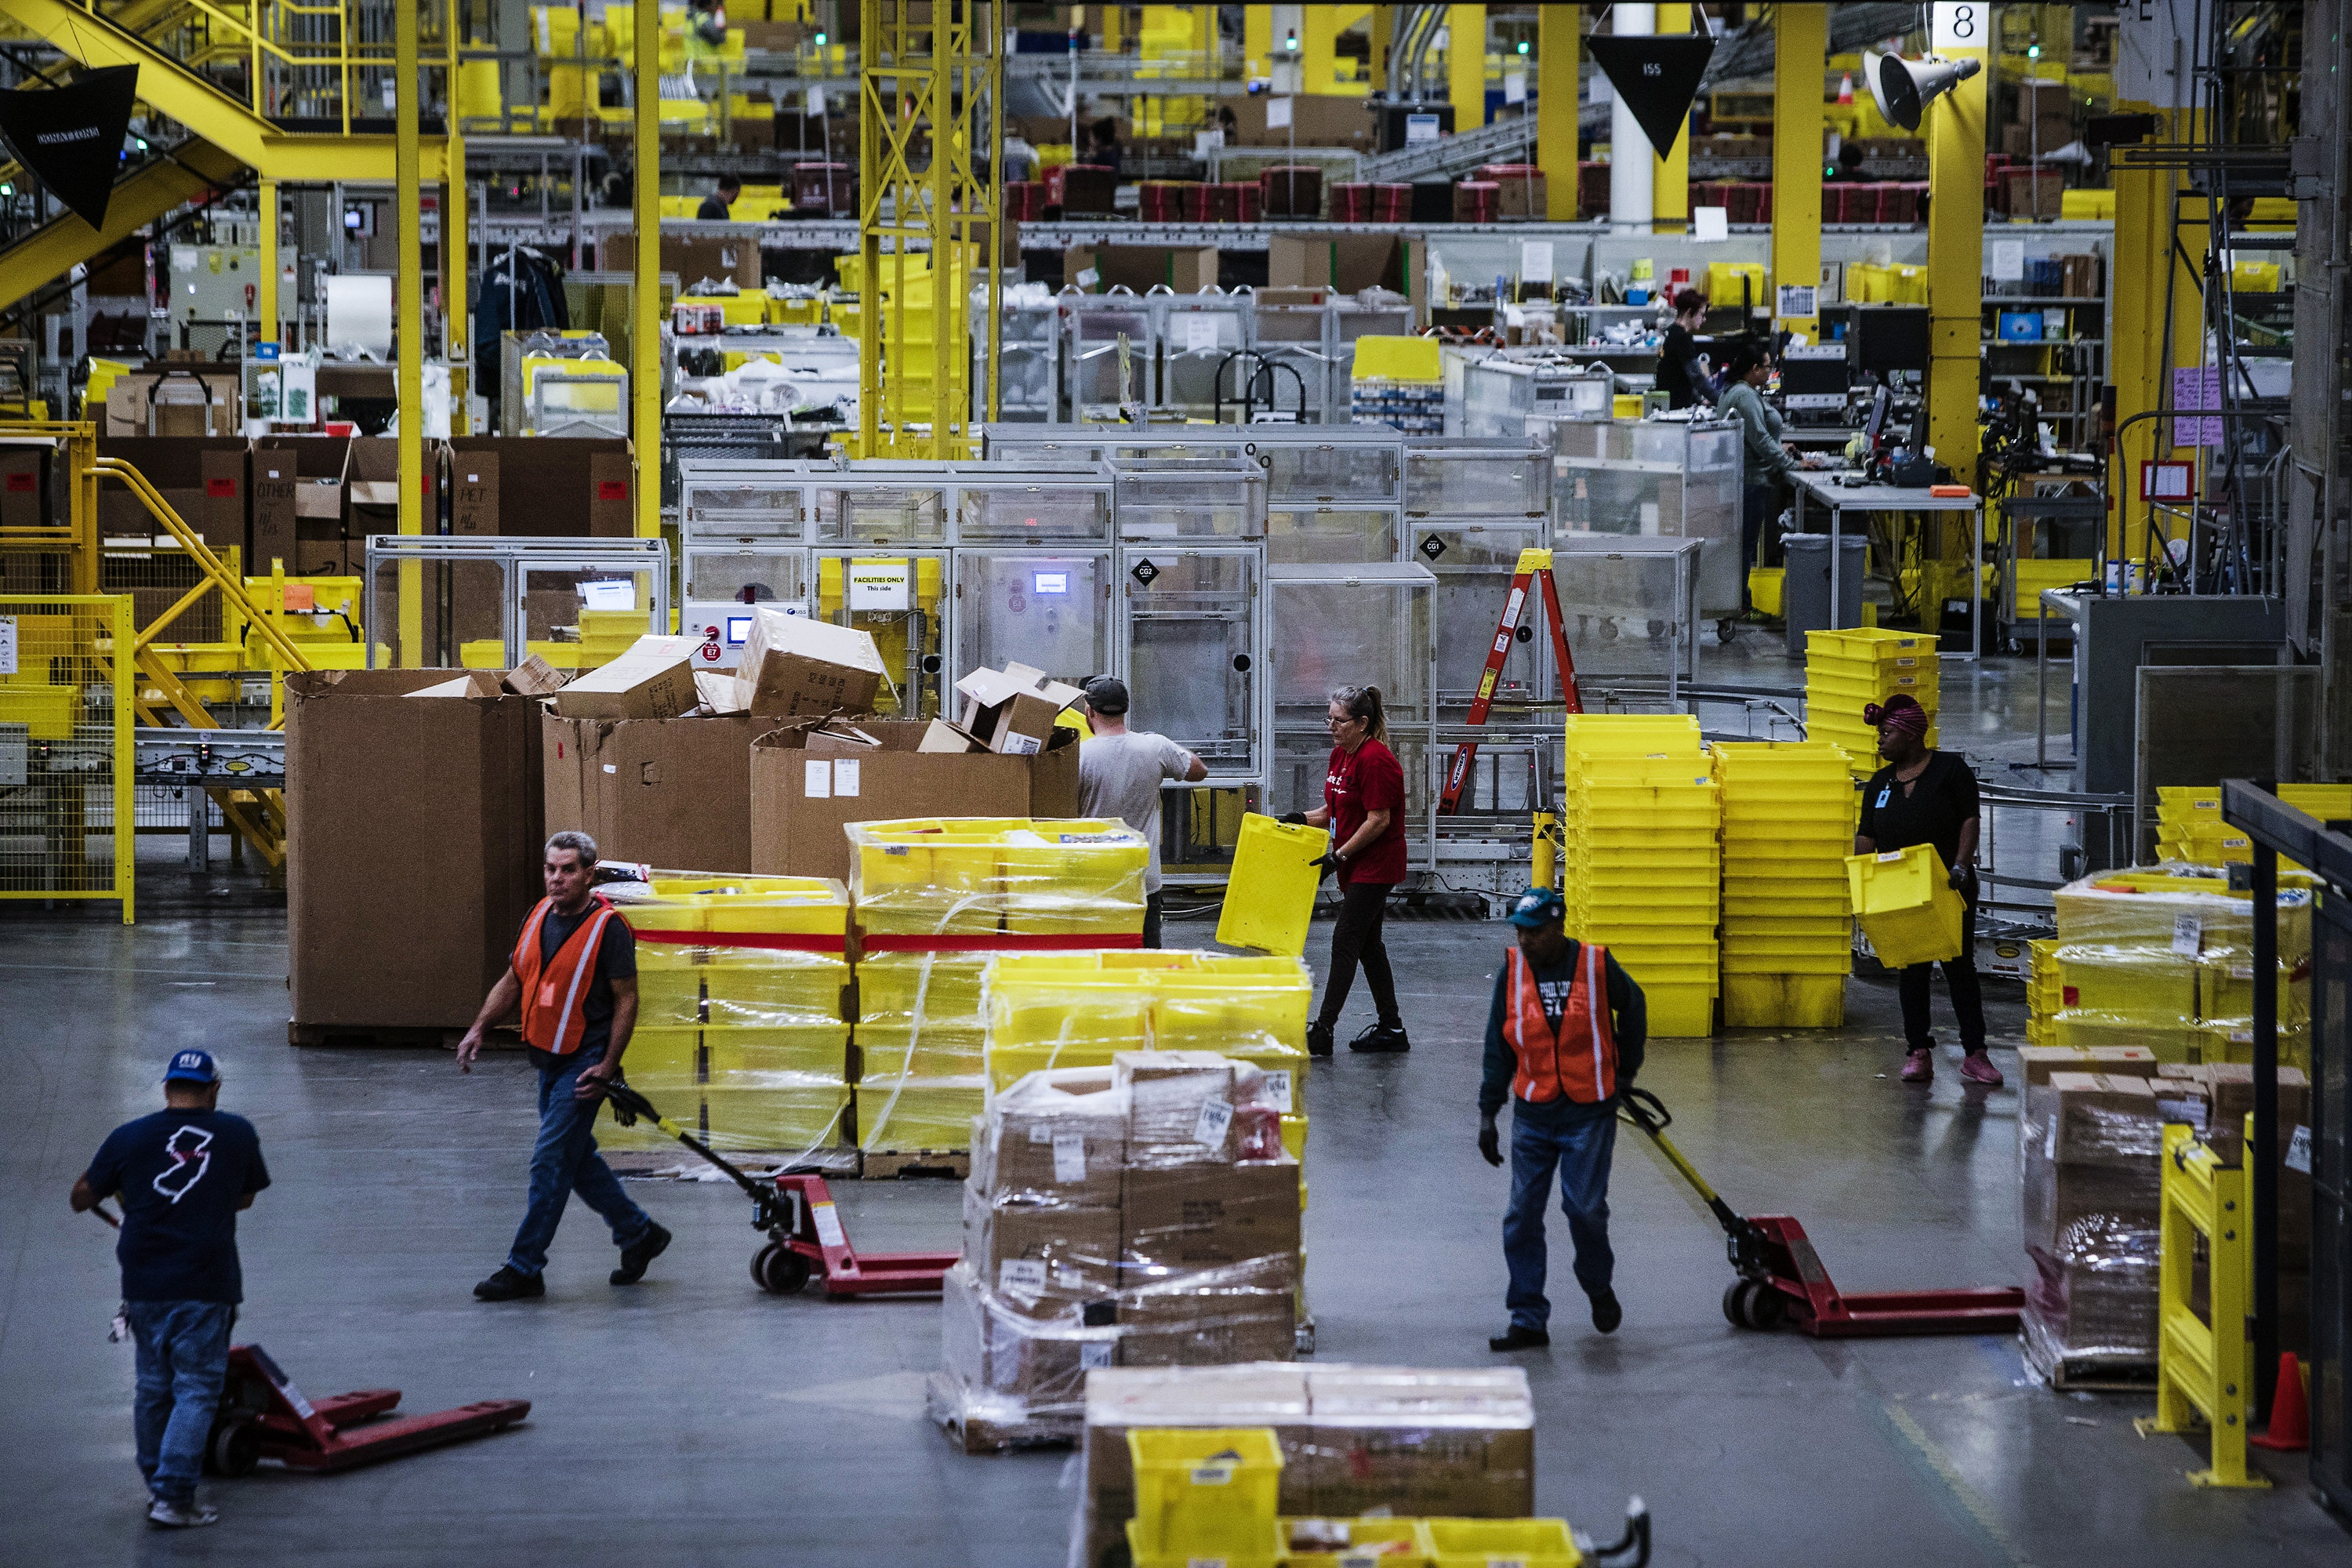 Employees pull pallet trucks at the Amazon.com Inc. fulfillment center in Robbinsville, New Jersey, U.S., on Monday, Nov. 27, 2017. The holiday shopping season is off to a strong start and retailers appear to be continuing the momentum today -- Cyber Monday -- the biggest online spending day of the year. Photographer: Victor J. Blue/Bloomberg via Getty Images